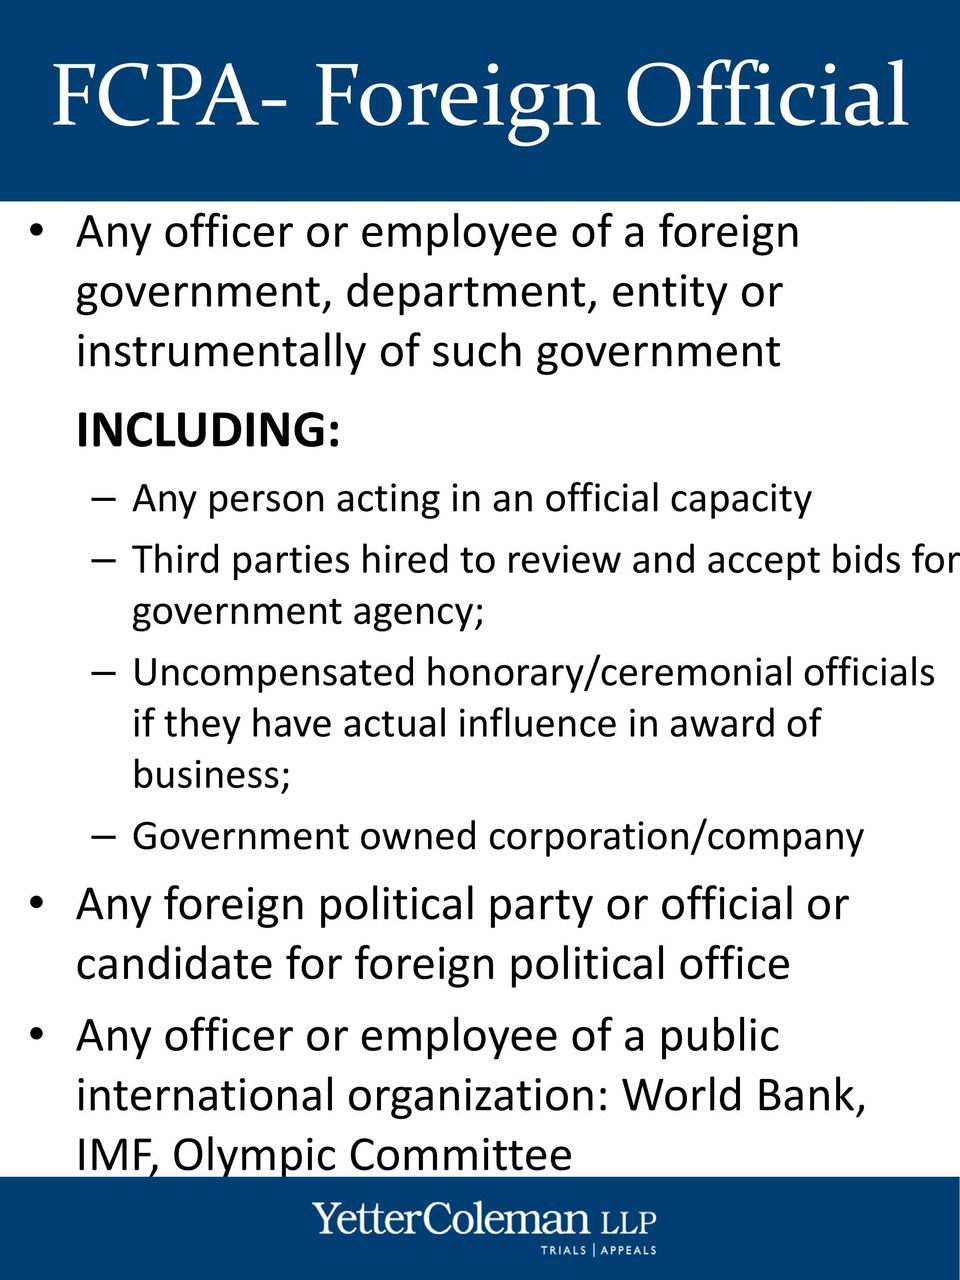 honorary/ceremonial officials if they have actual influence in award of business; Government owned corporation/company Any foreign political